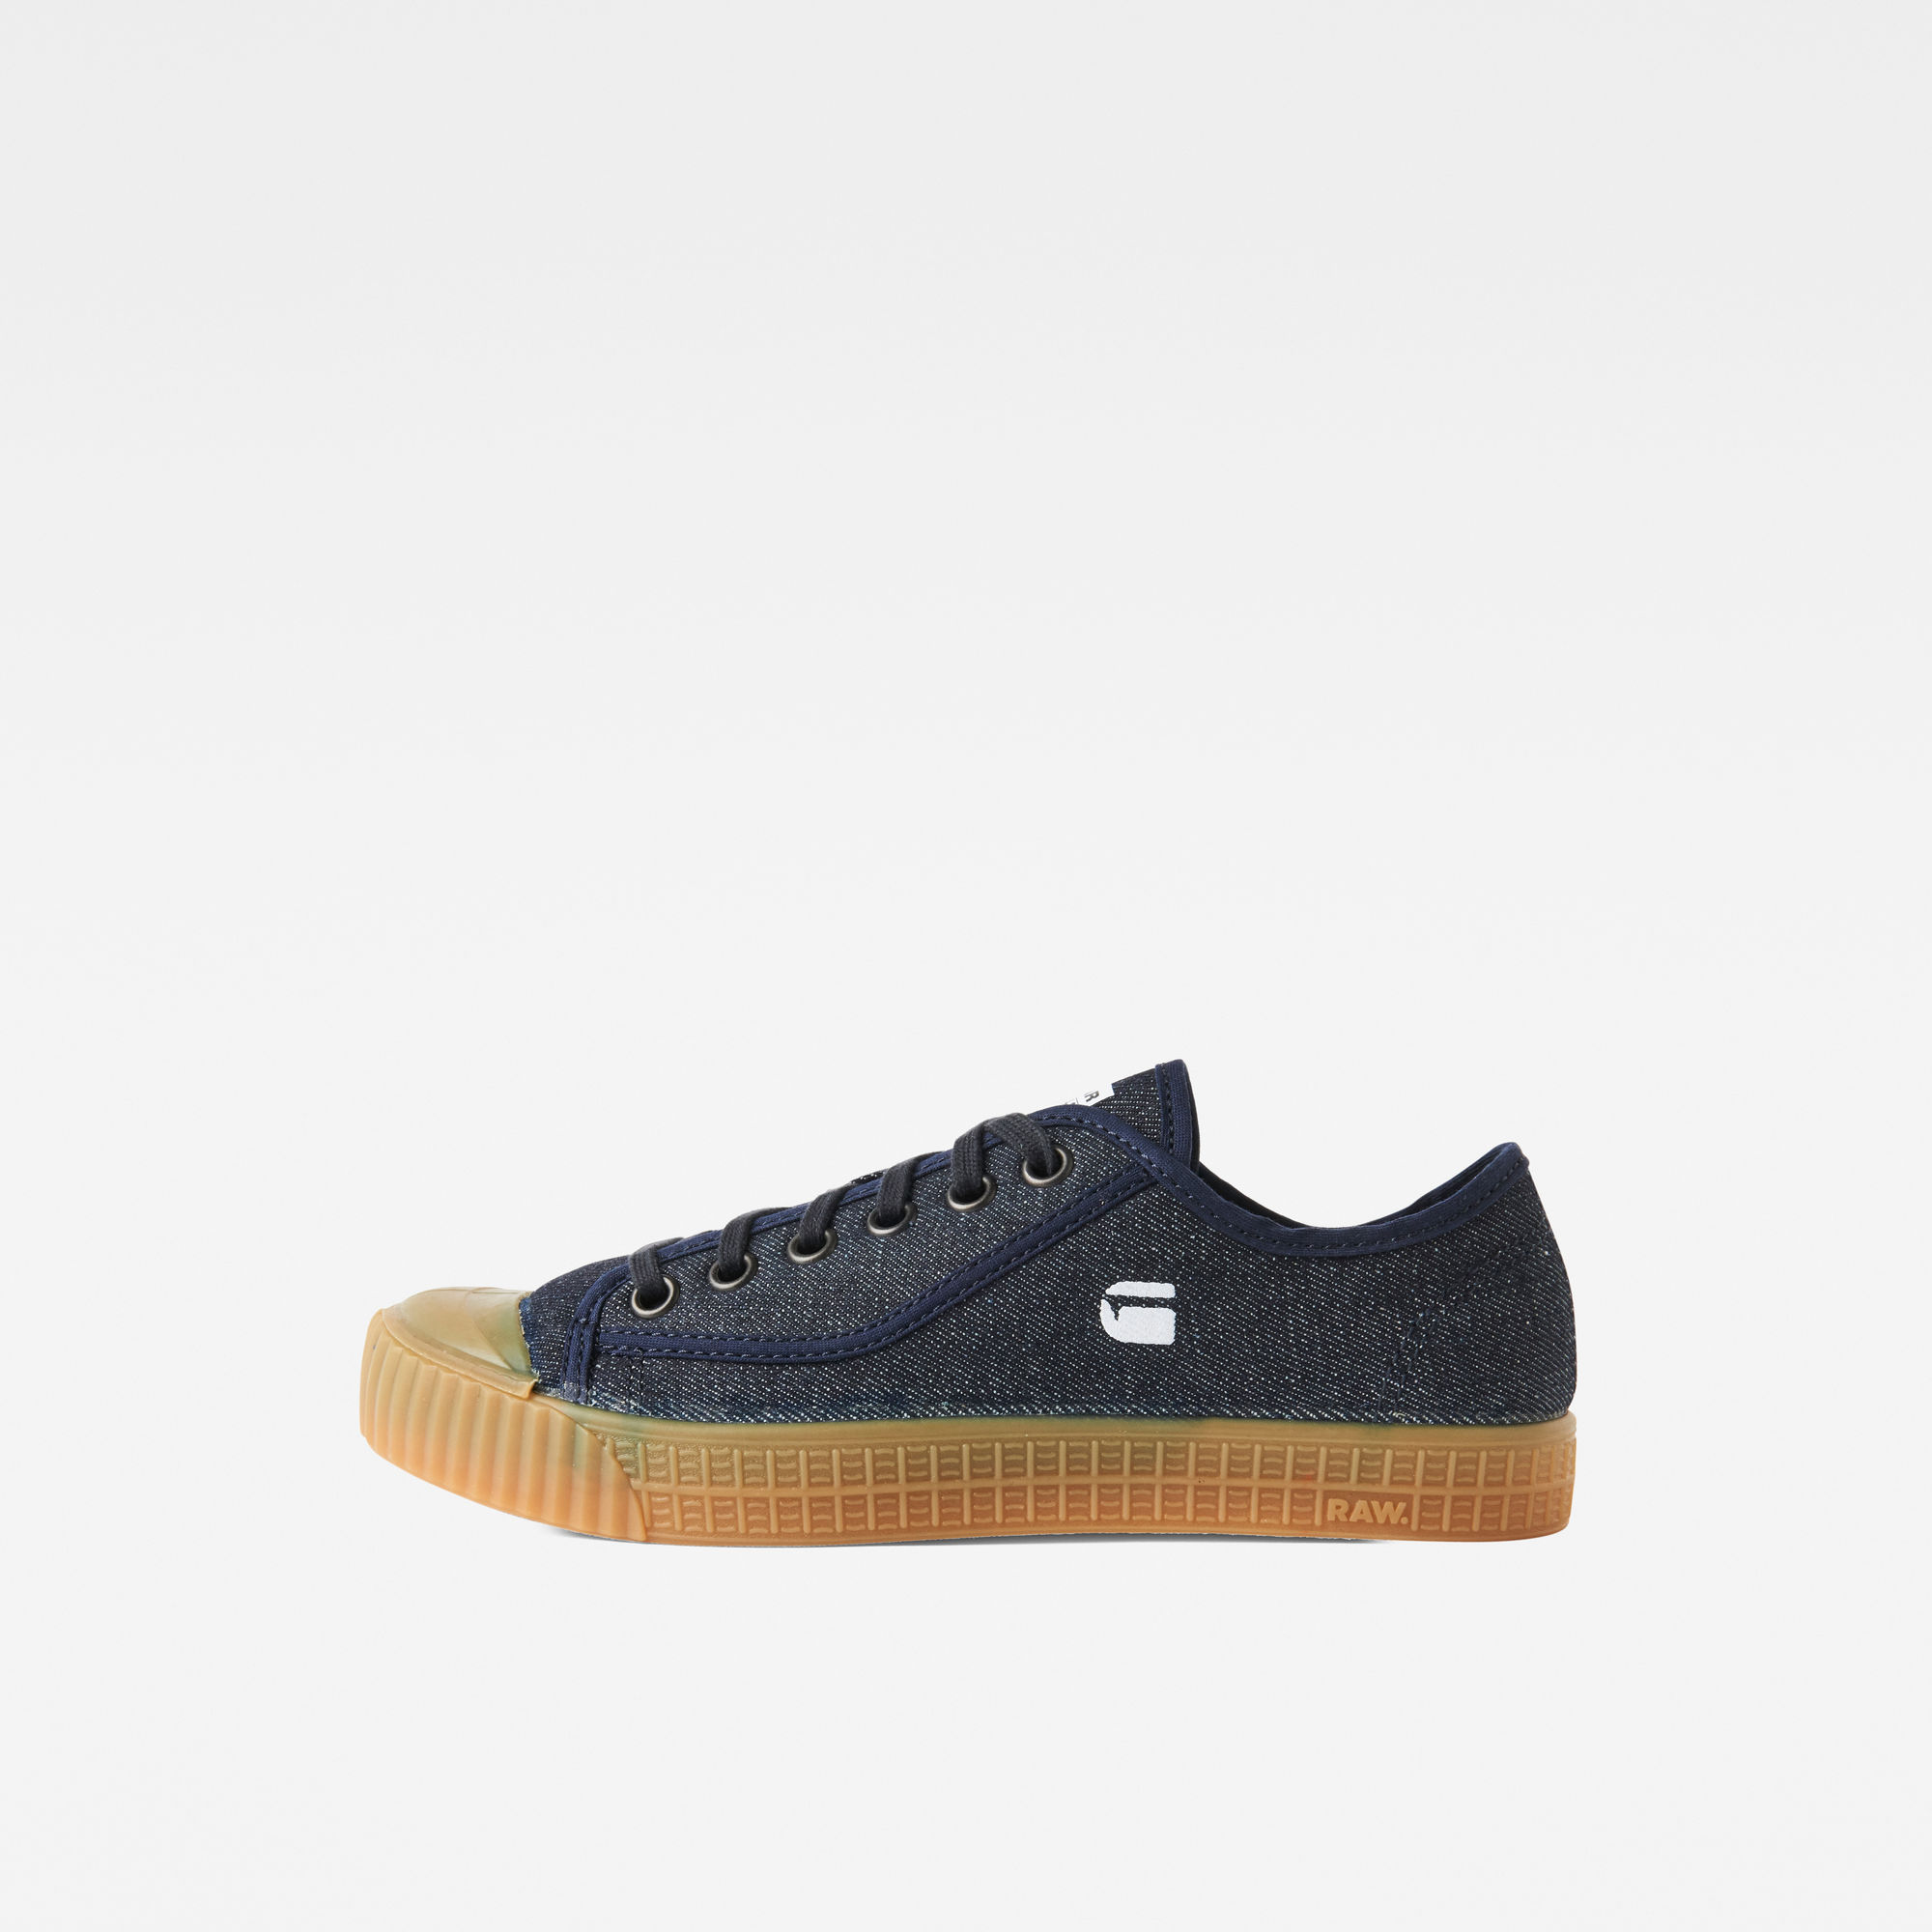 Image of G Star Raw Rovulc Roel Low Sneakers